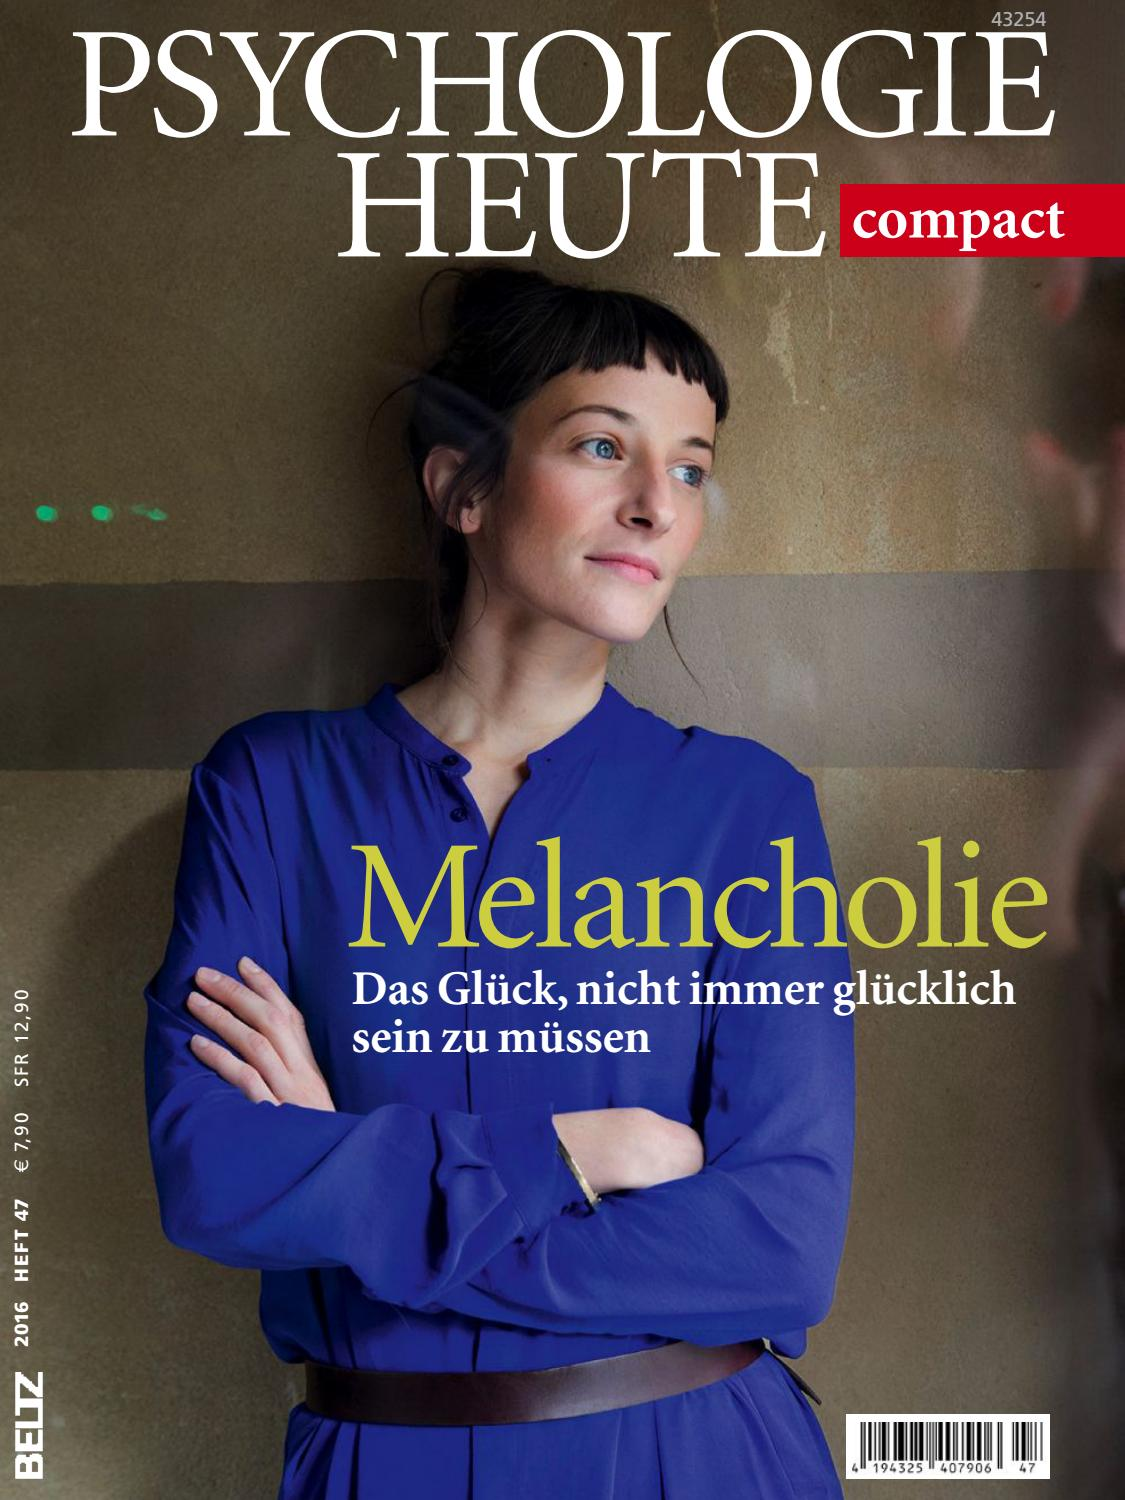 Psychologie heute compact ep 47 2016 by lan nguy n issuu for Psychologie nc 2016